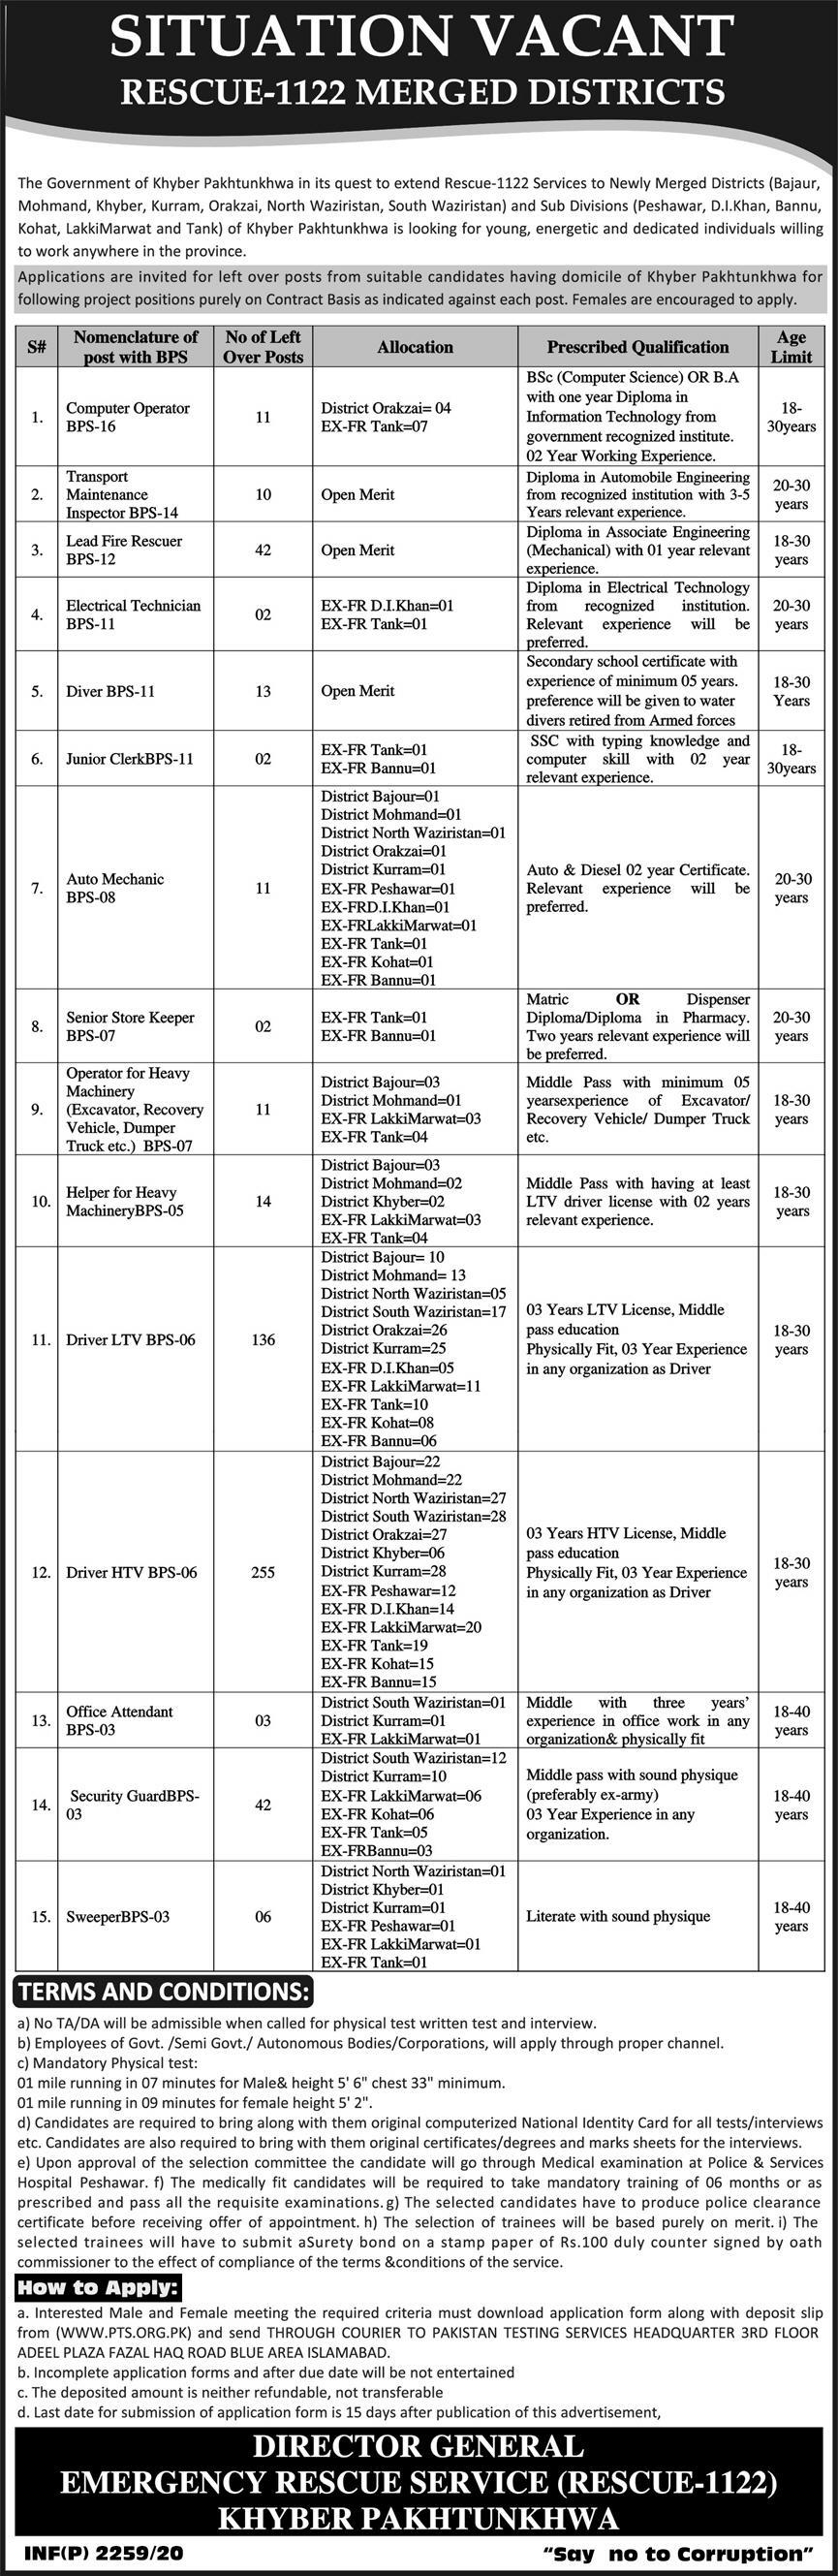 Kpk Emergency Rescue Service 1122 jobs newspaper ad for Computer Operator in Peshawar